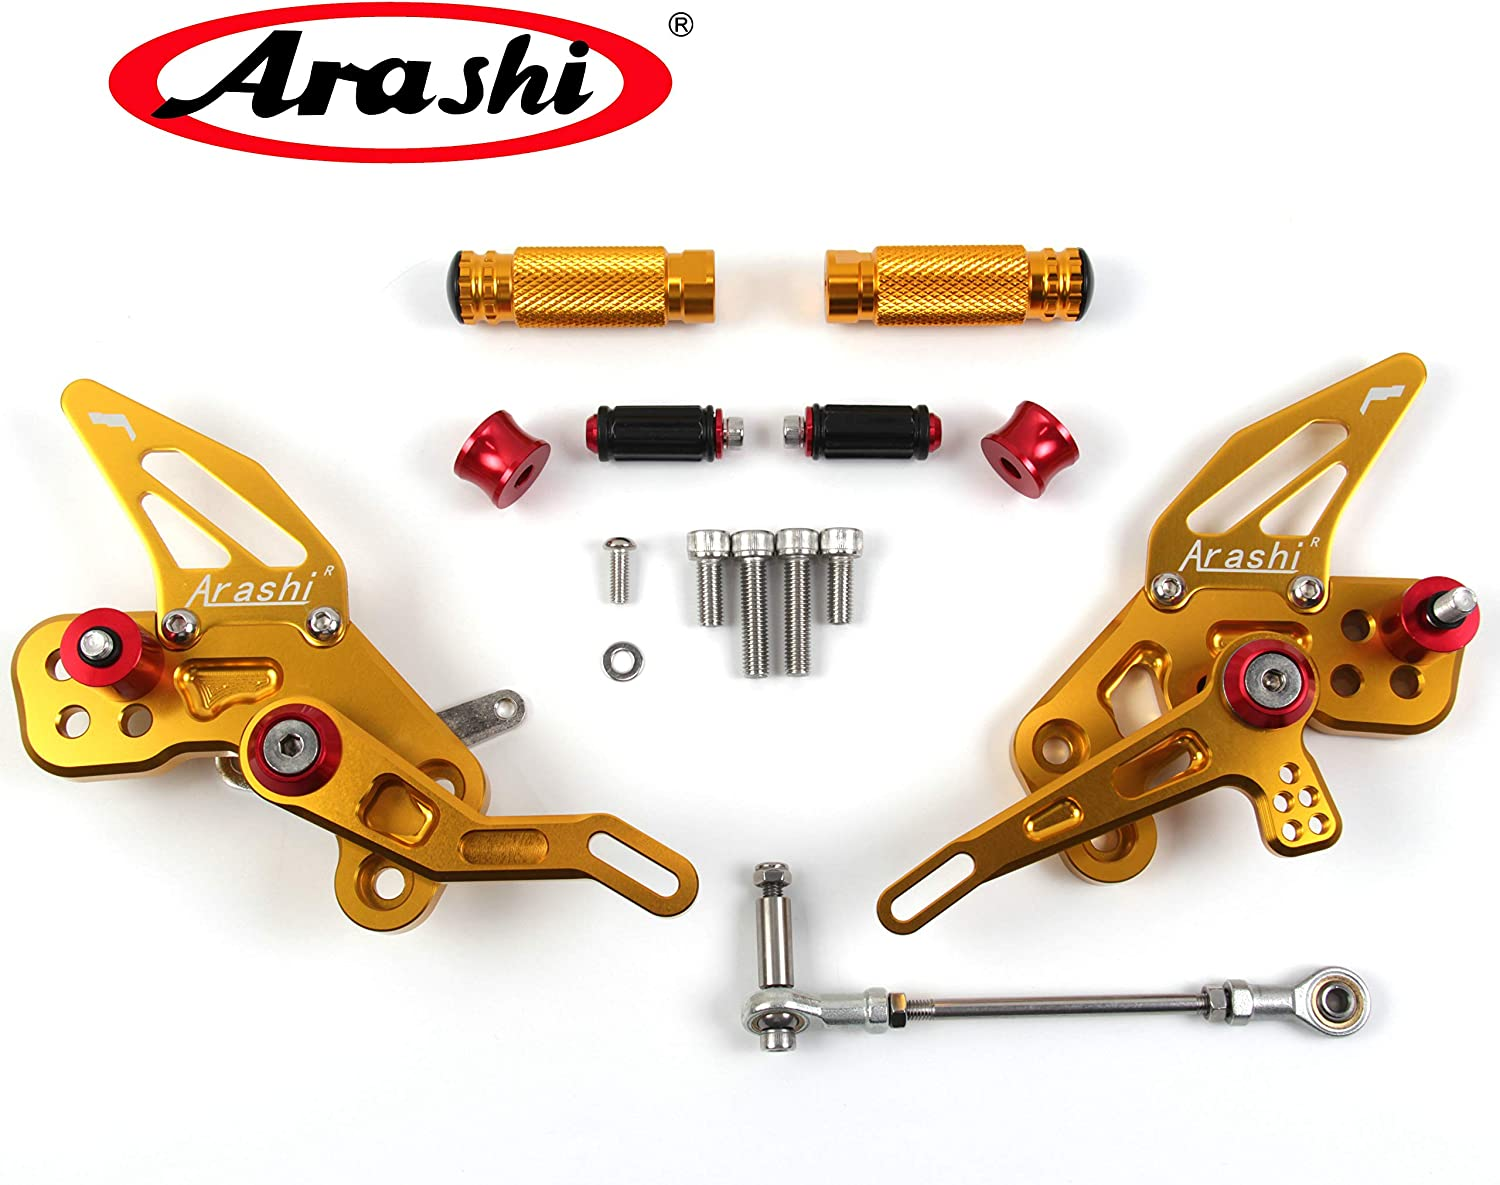 Arashi Rearsets Footrests FootPegs for KAWASAKI NINJA ZX10R 2008 2009 2010 Motorcycle Accessories Adjustable Foot Peg Rest ZX-10R ZX 10R 1 Set Gold 08 09 10